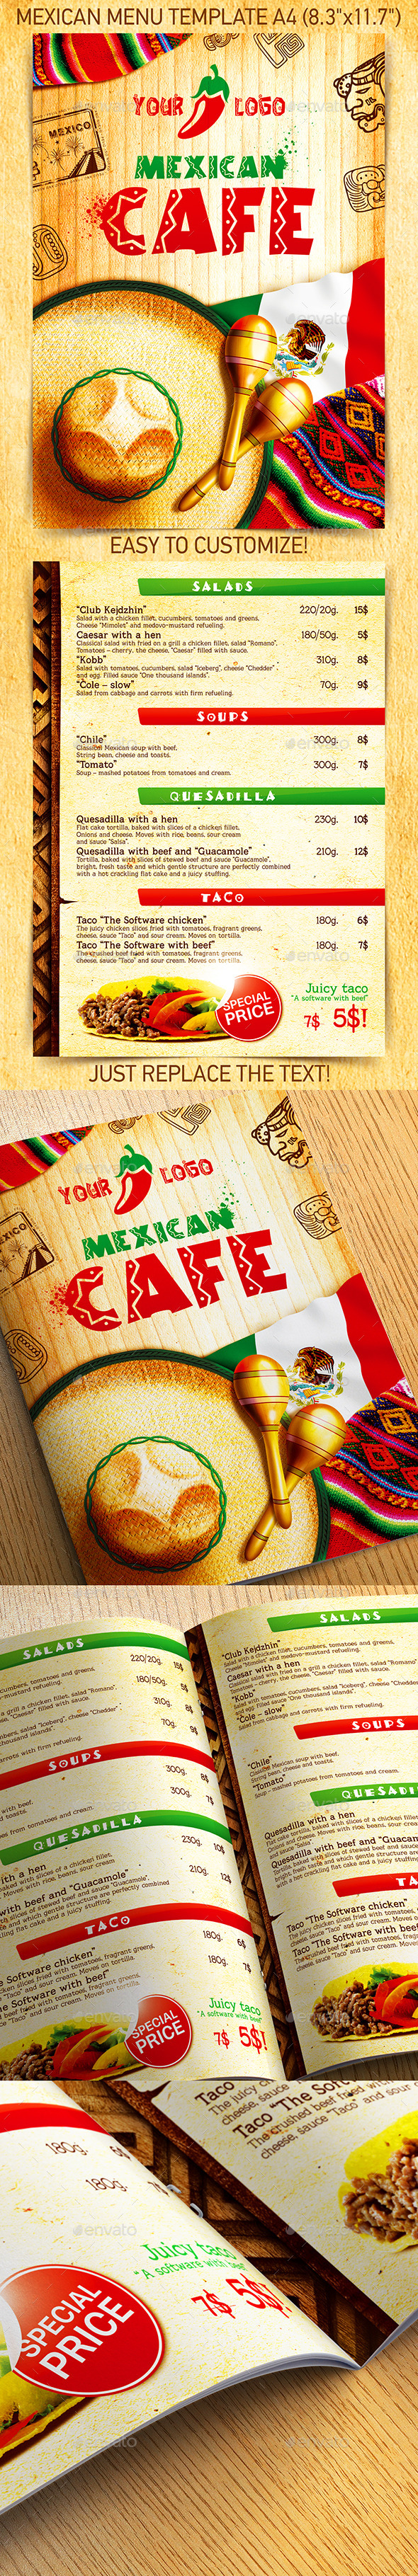 Mexican Menu Template vol.2 - Food Menus Print Templates